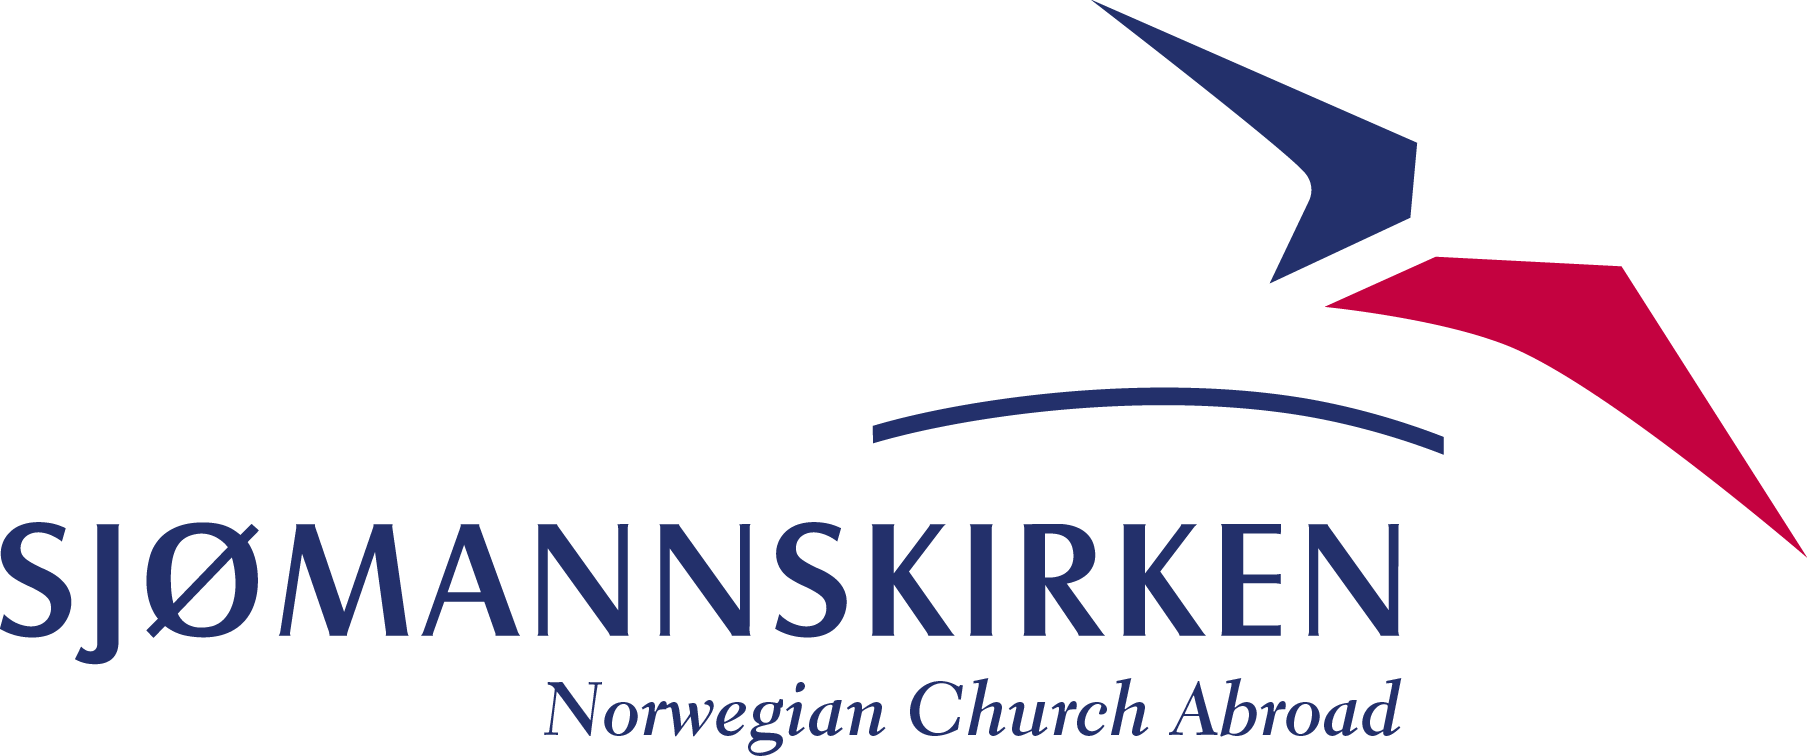 Norwegian Society and Church Service in D.C.